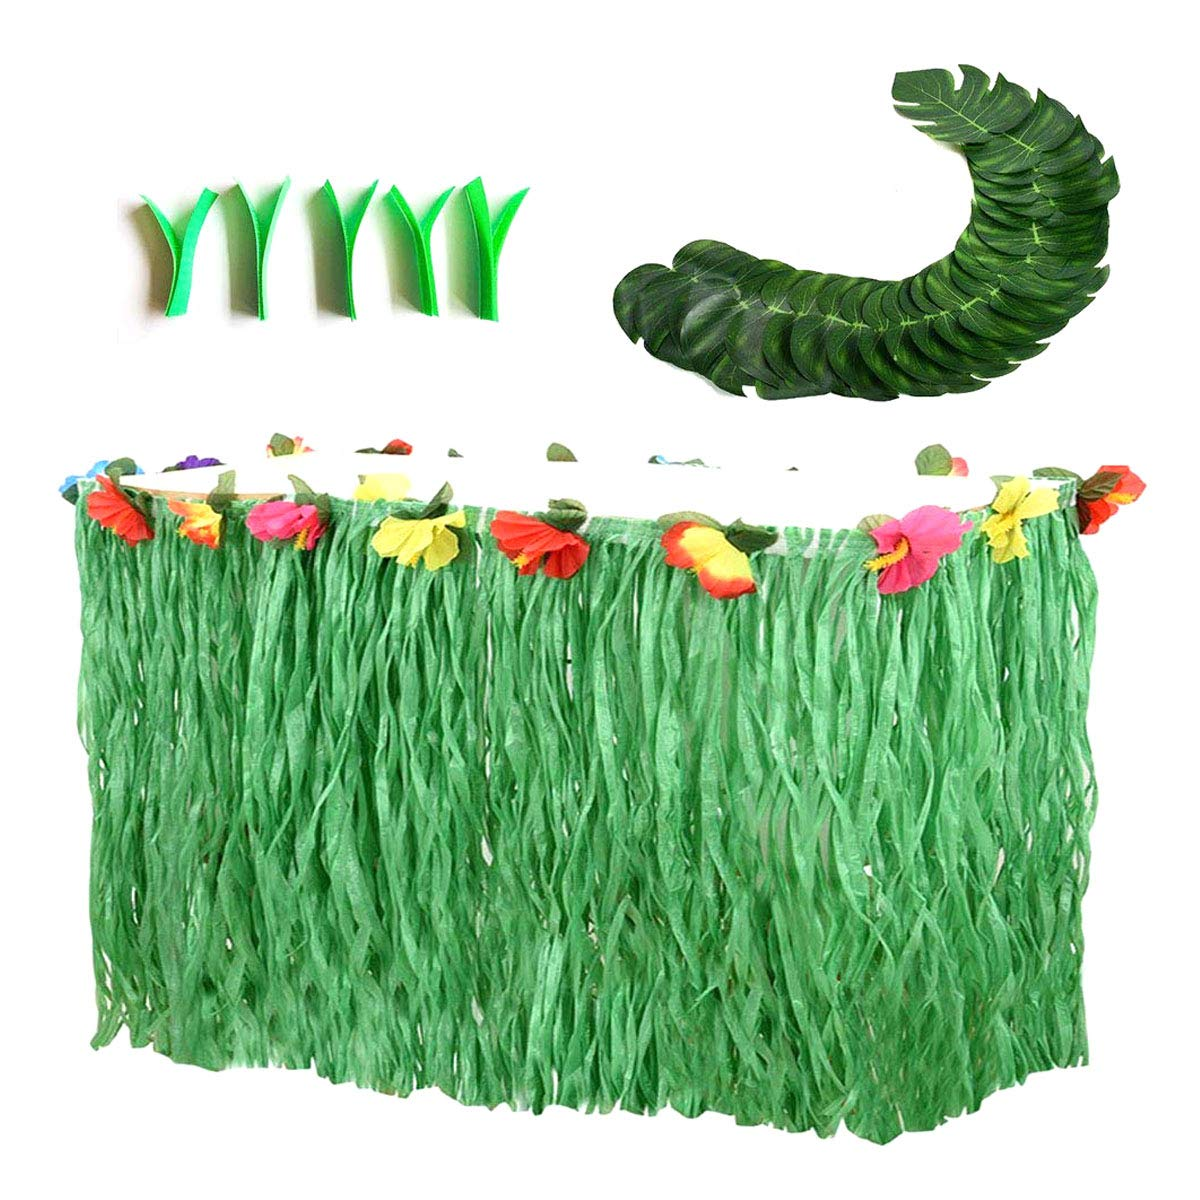 Hawaiian Luau Party Supplies-1 Pack Grass Table Skirt 9ft,20 Pcs Tropical Faux Palm Leaves5Pcs Adhesive Hook & Loop for Hula, Luau, Maui, Hawaiian, Moana Themed Party(26pcs) by COCOScent